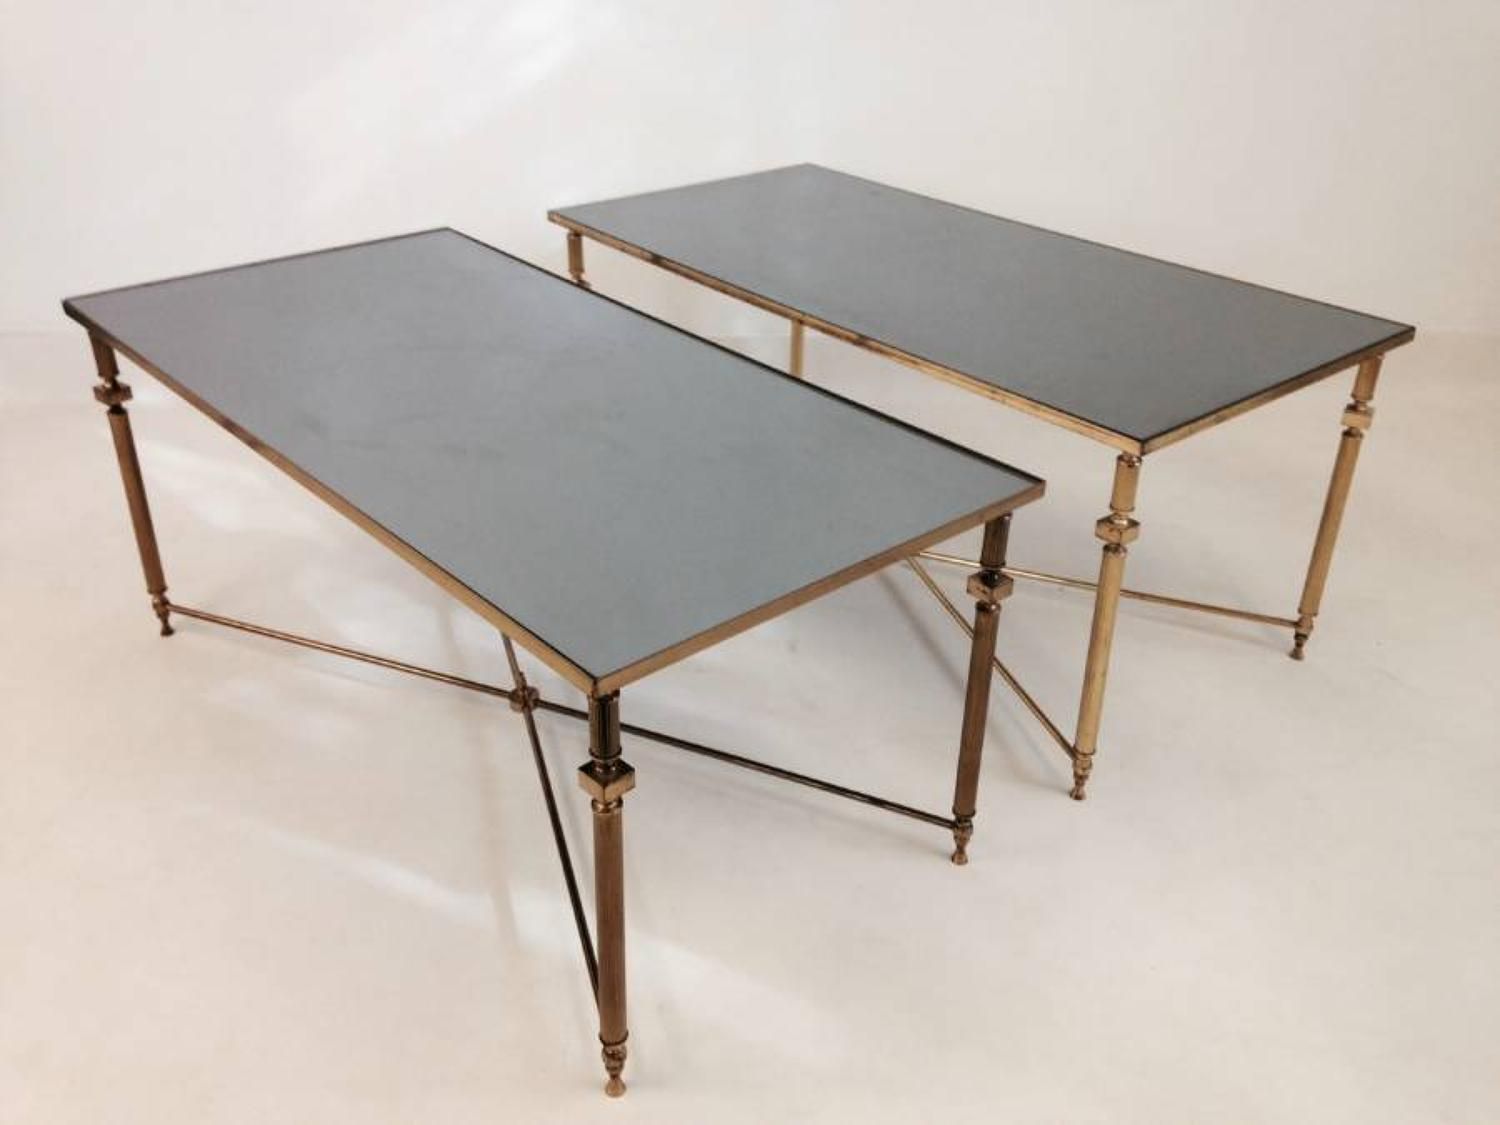 A pair of brass and black glass coffee tables